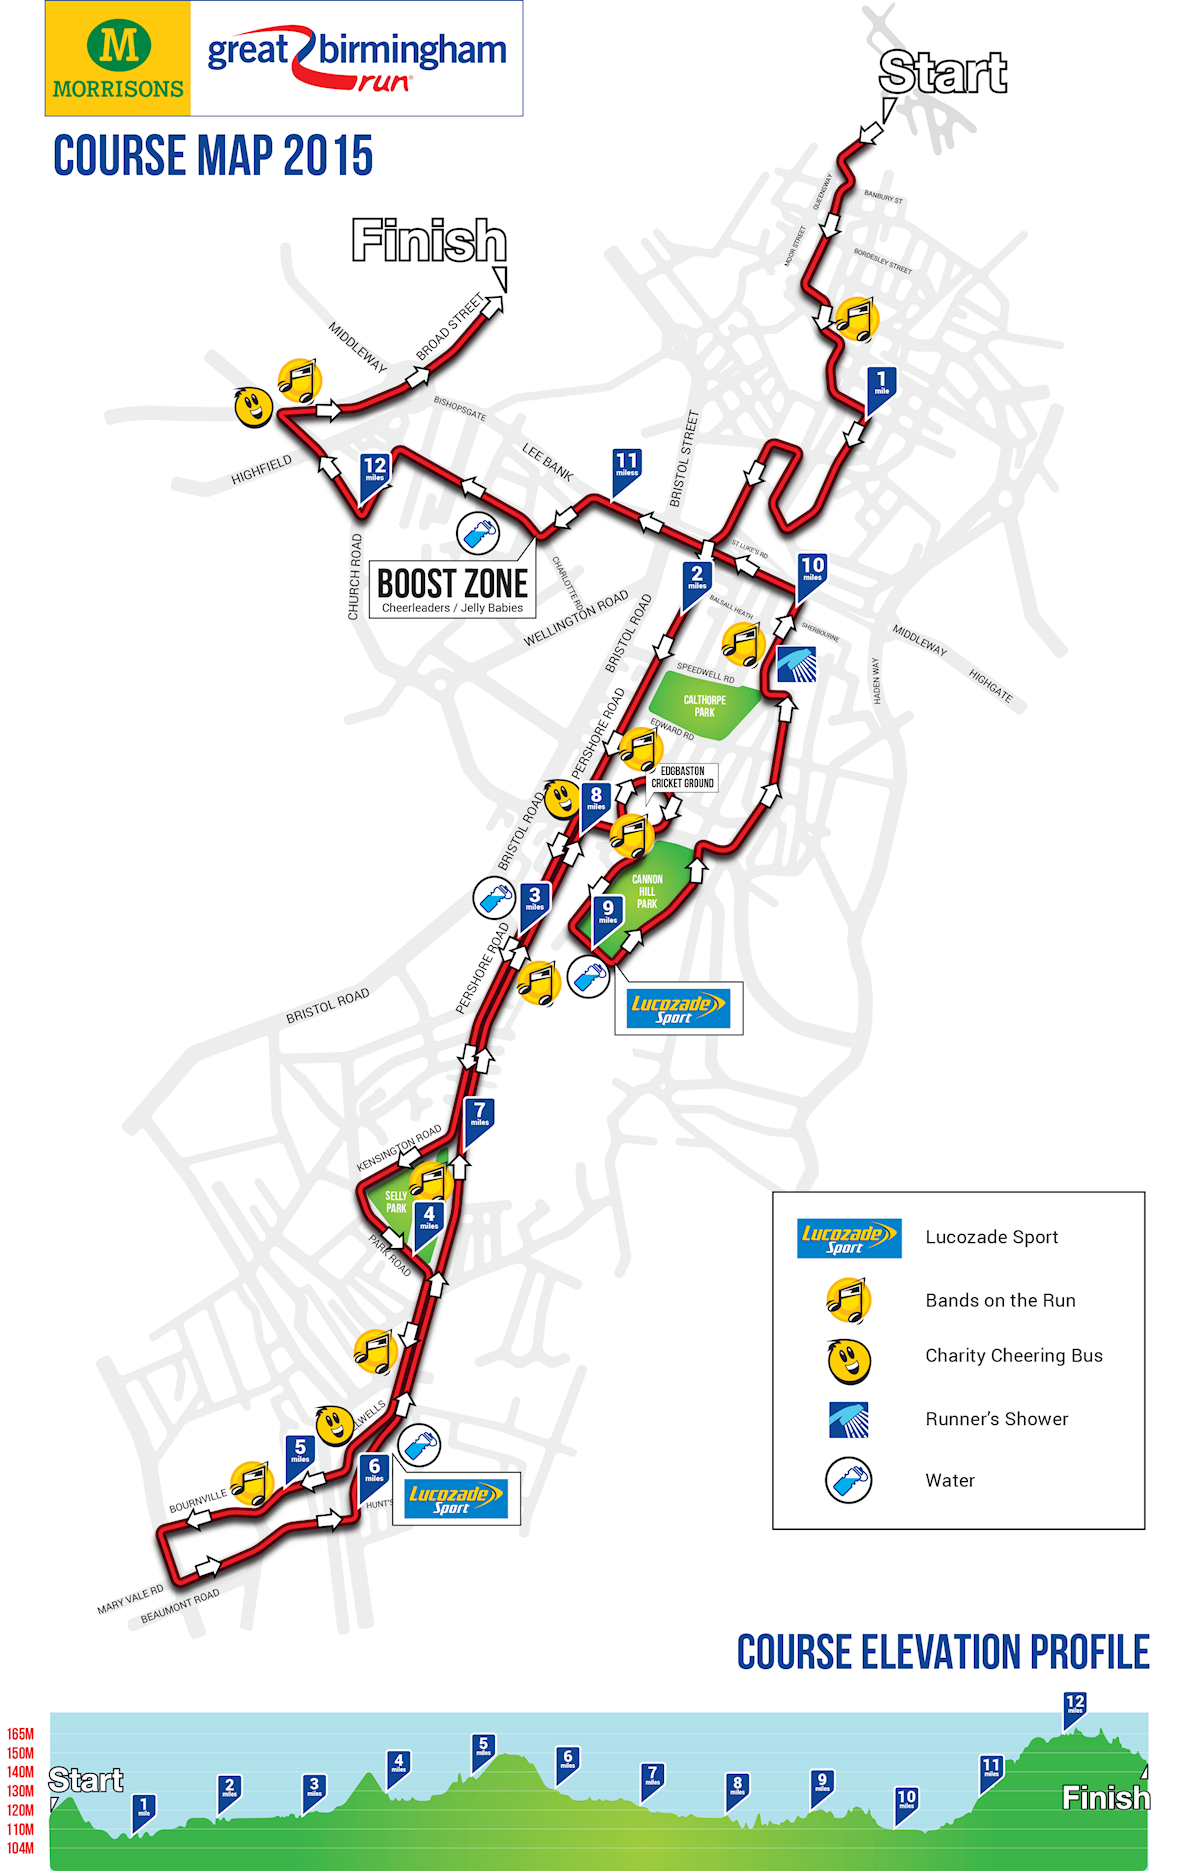 Great Birmingham Run MAPA DEL RECORRIDO DE